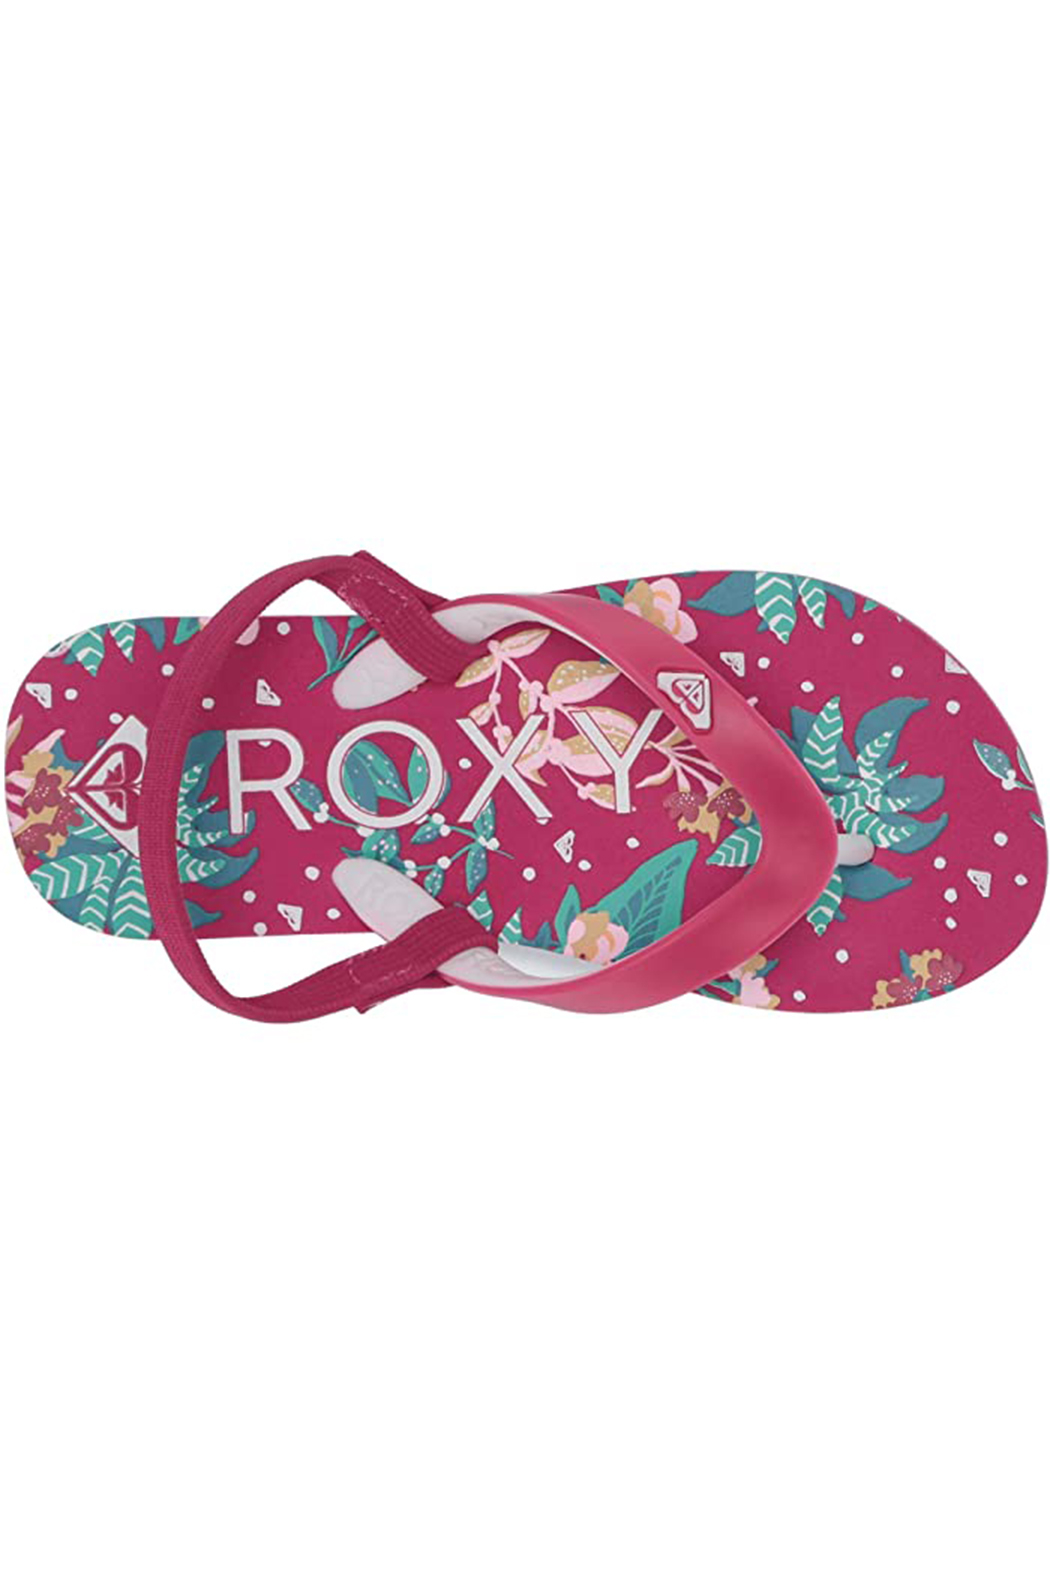 Roxy TW Tahiti VI Flip Flop With Backstrap - Main Image